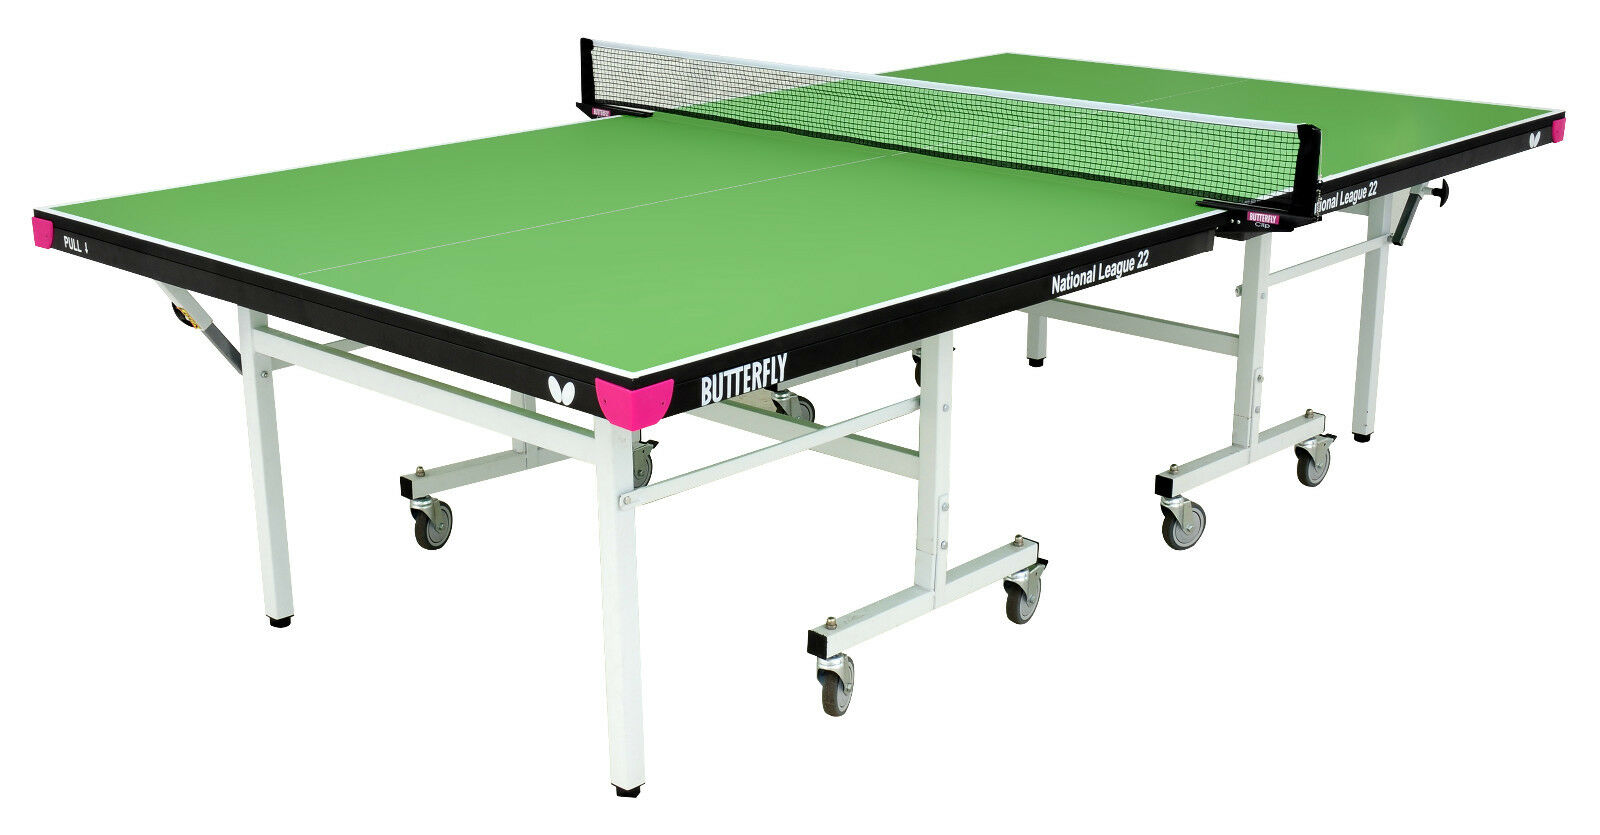 Butterfly National League 22 Table Tennis Table